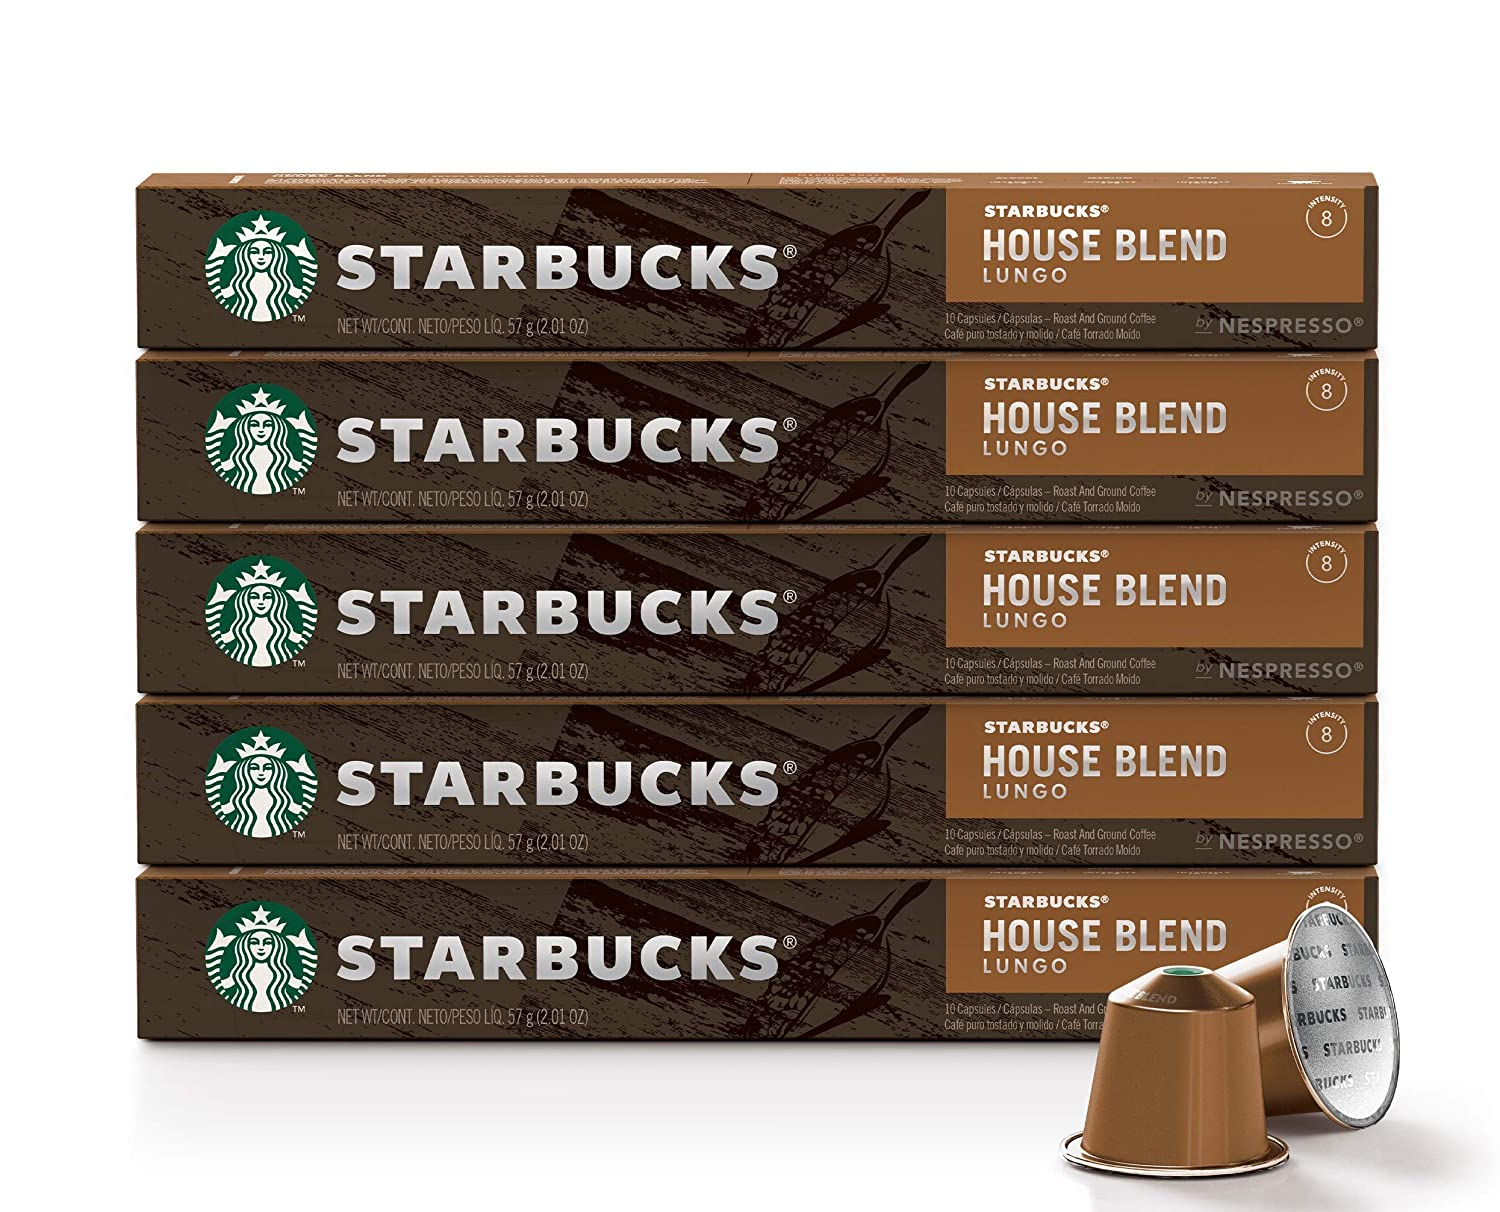 Starbucks by Nespresso: 50 Count House Blend! As low as .18 (REG: .84) at Amazon!